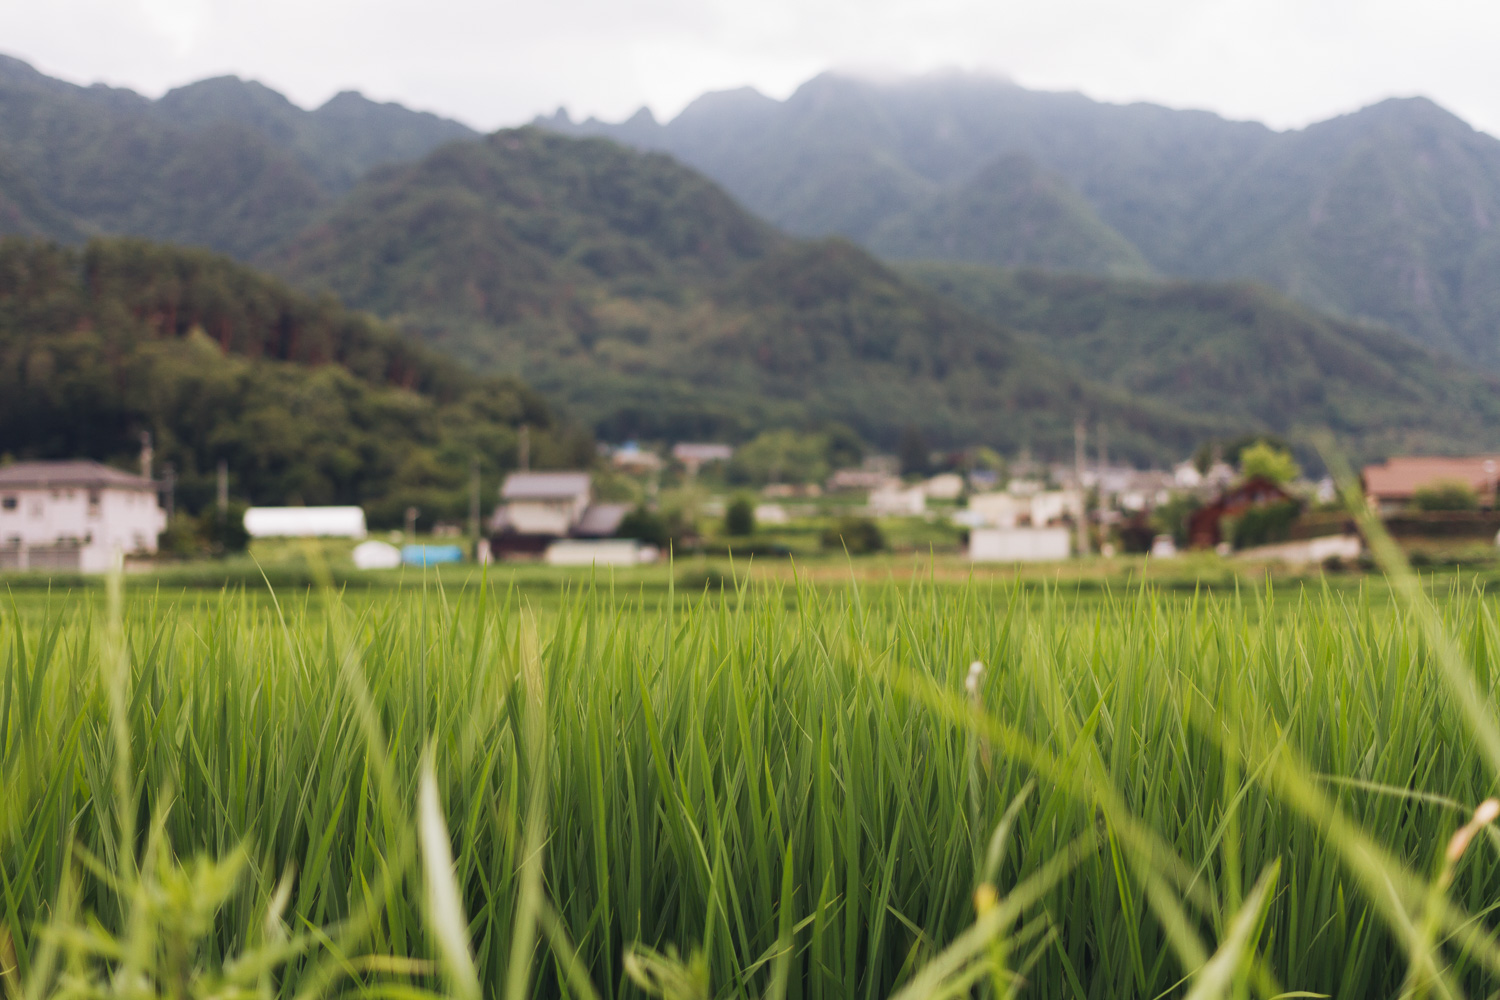 A lush green summer rice paddy in Ueda, Nagano, Japan